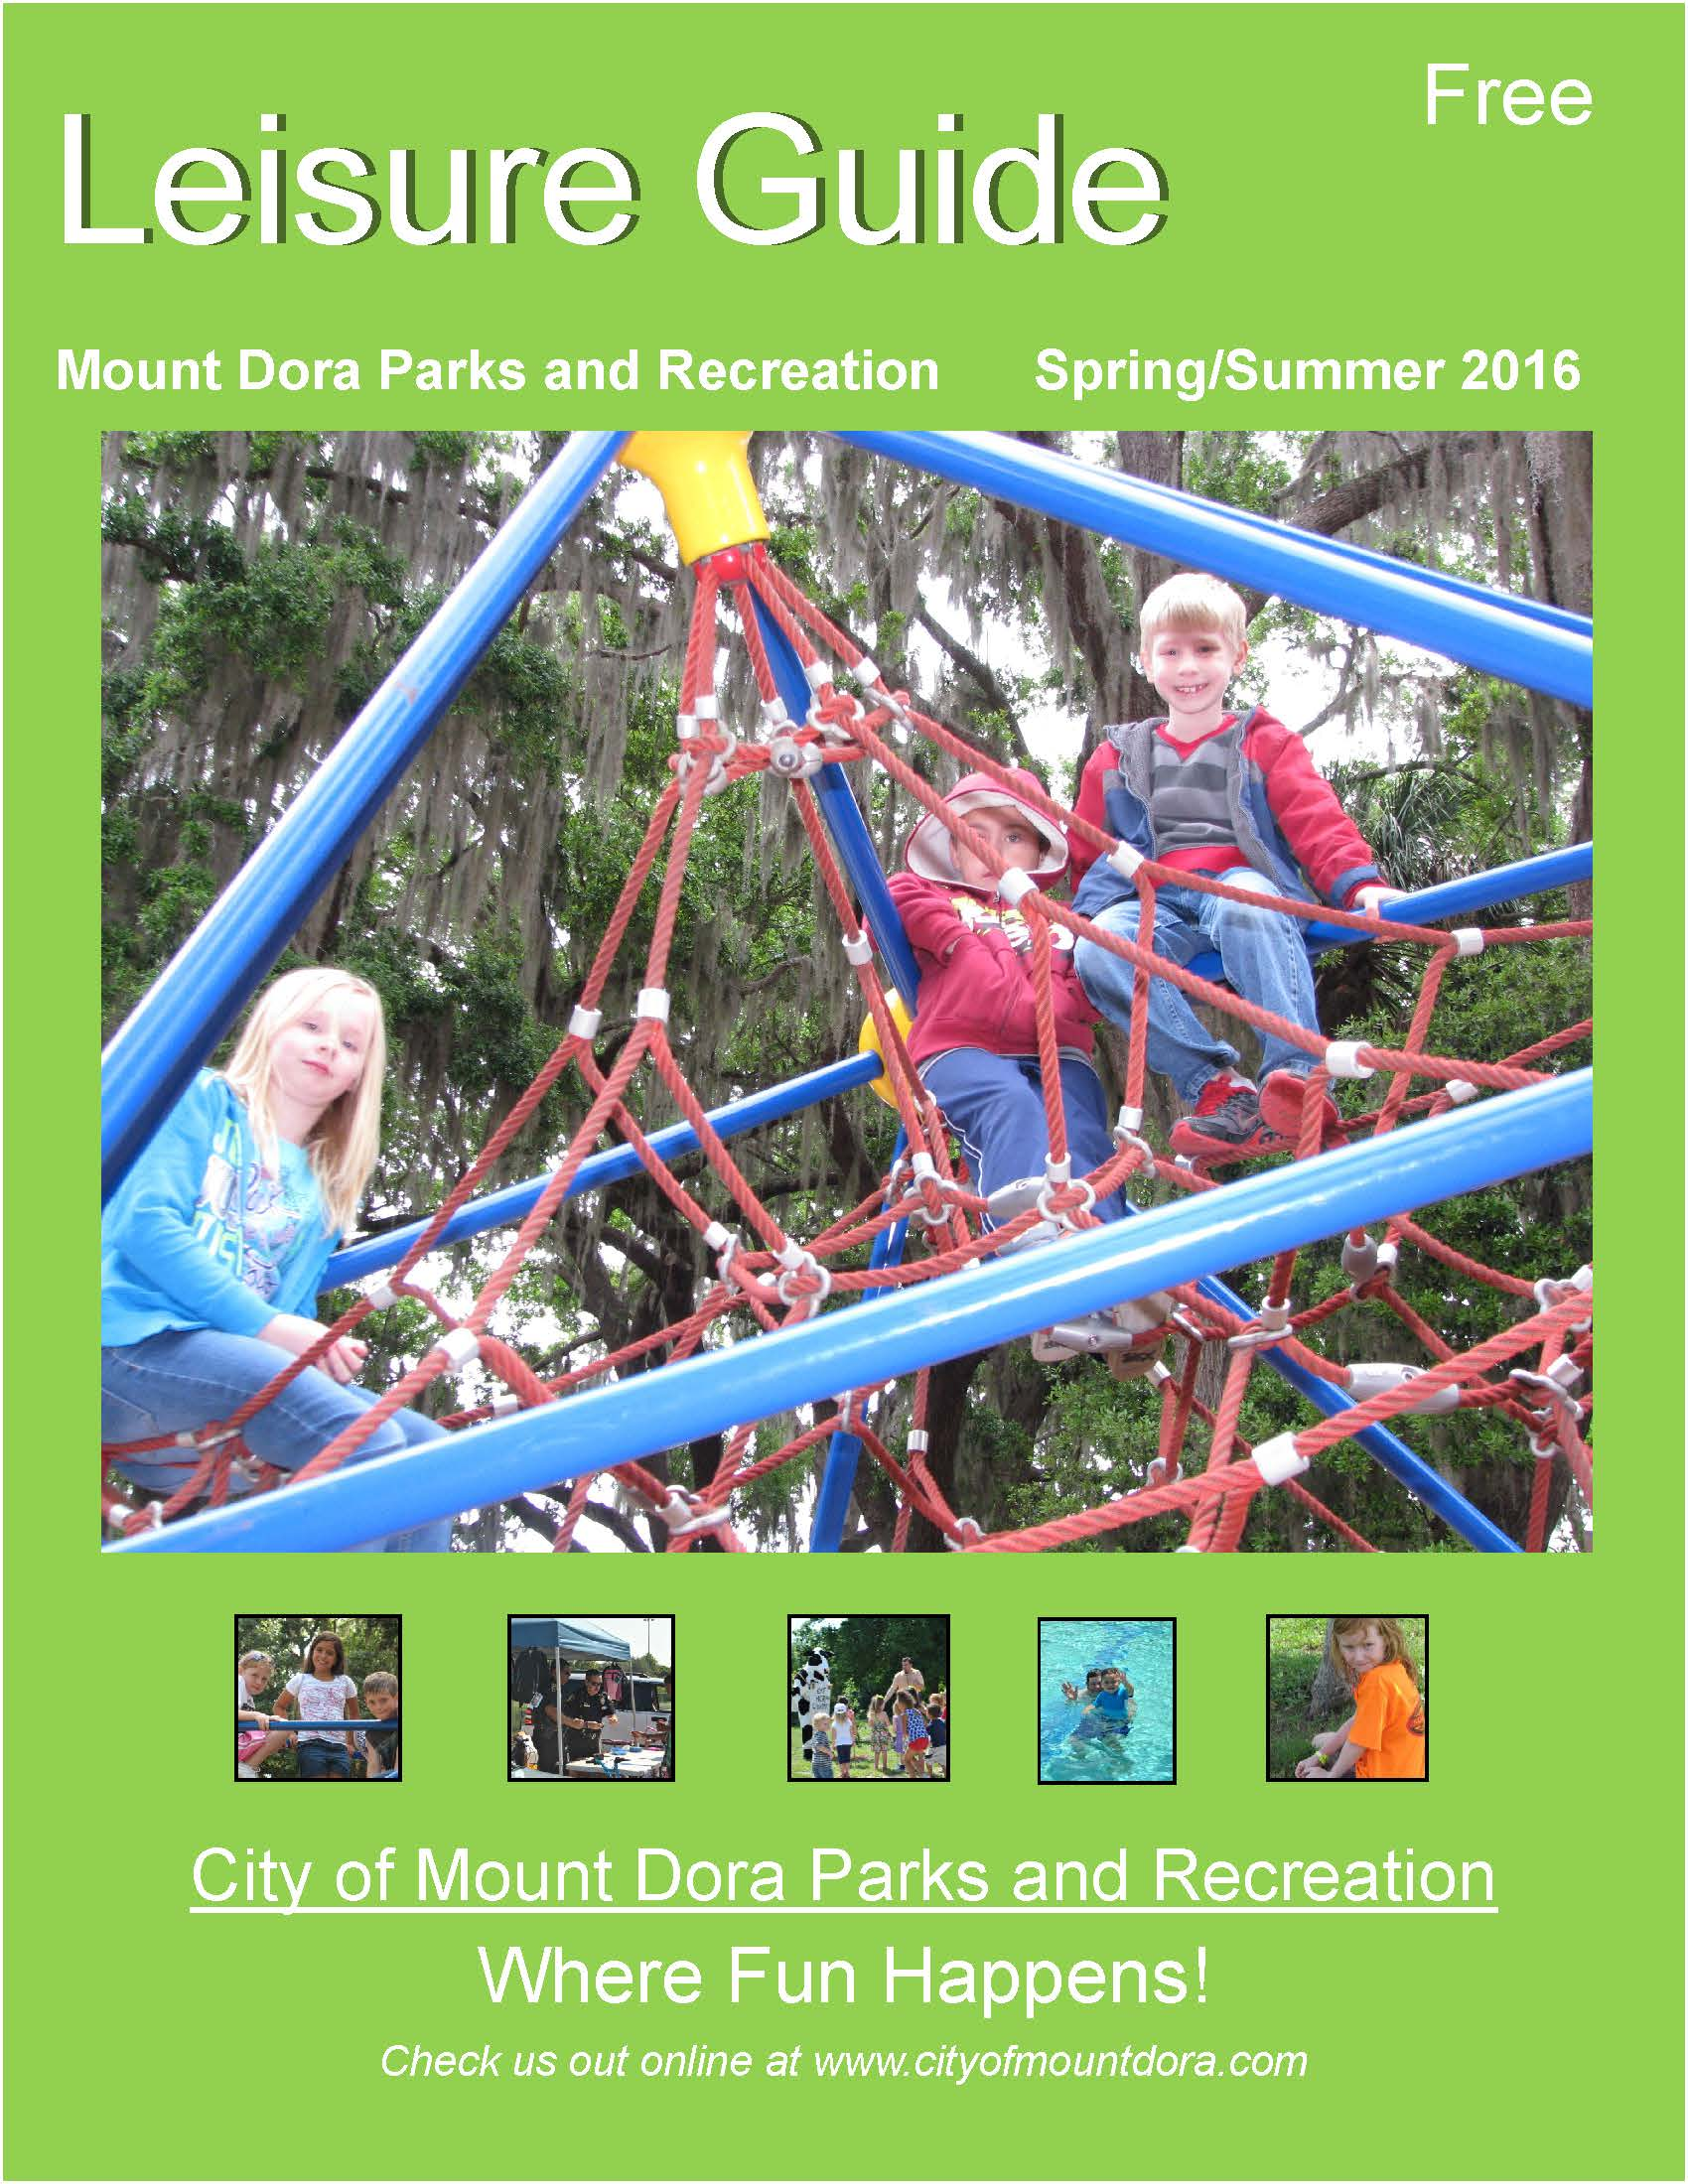 2016 Spring and Summer leisure guide_Page_01.jpg